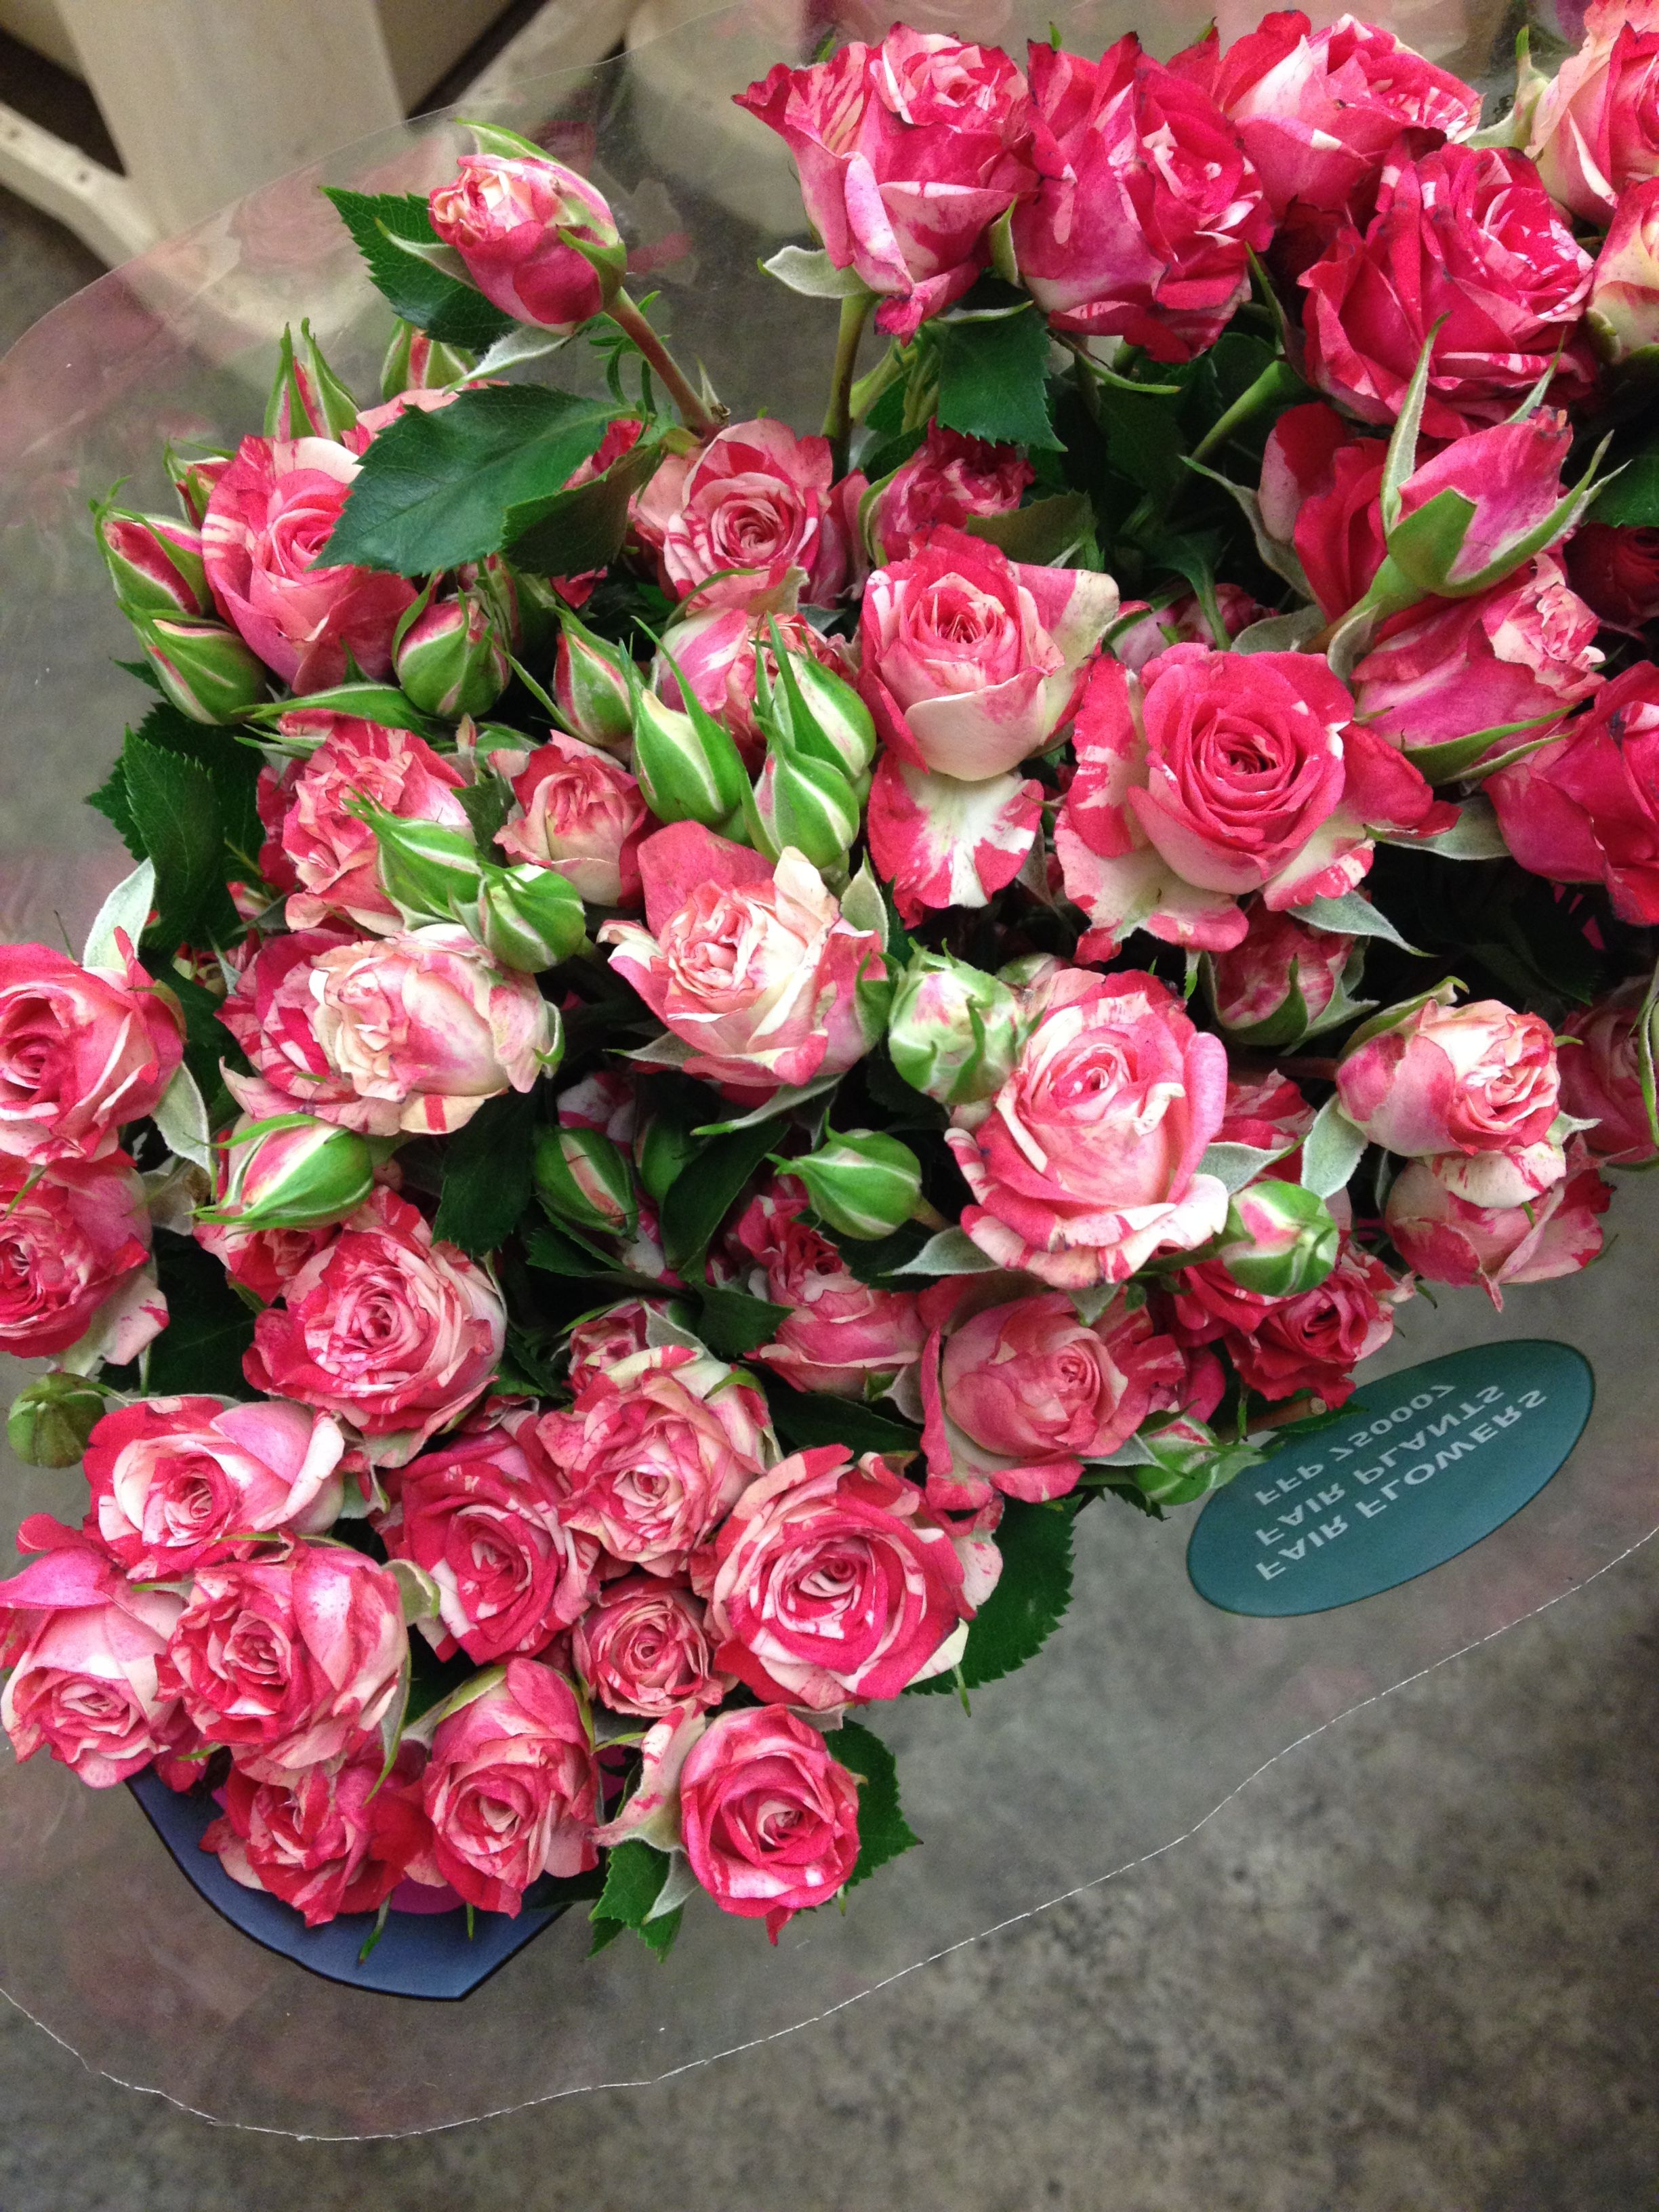 Cerise and white spray rose called \'Fireworks\' sold in bunches of 10 ...